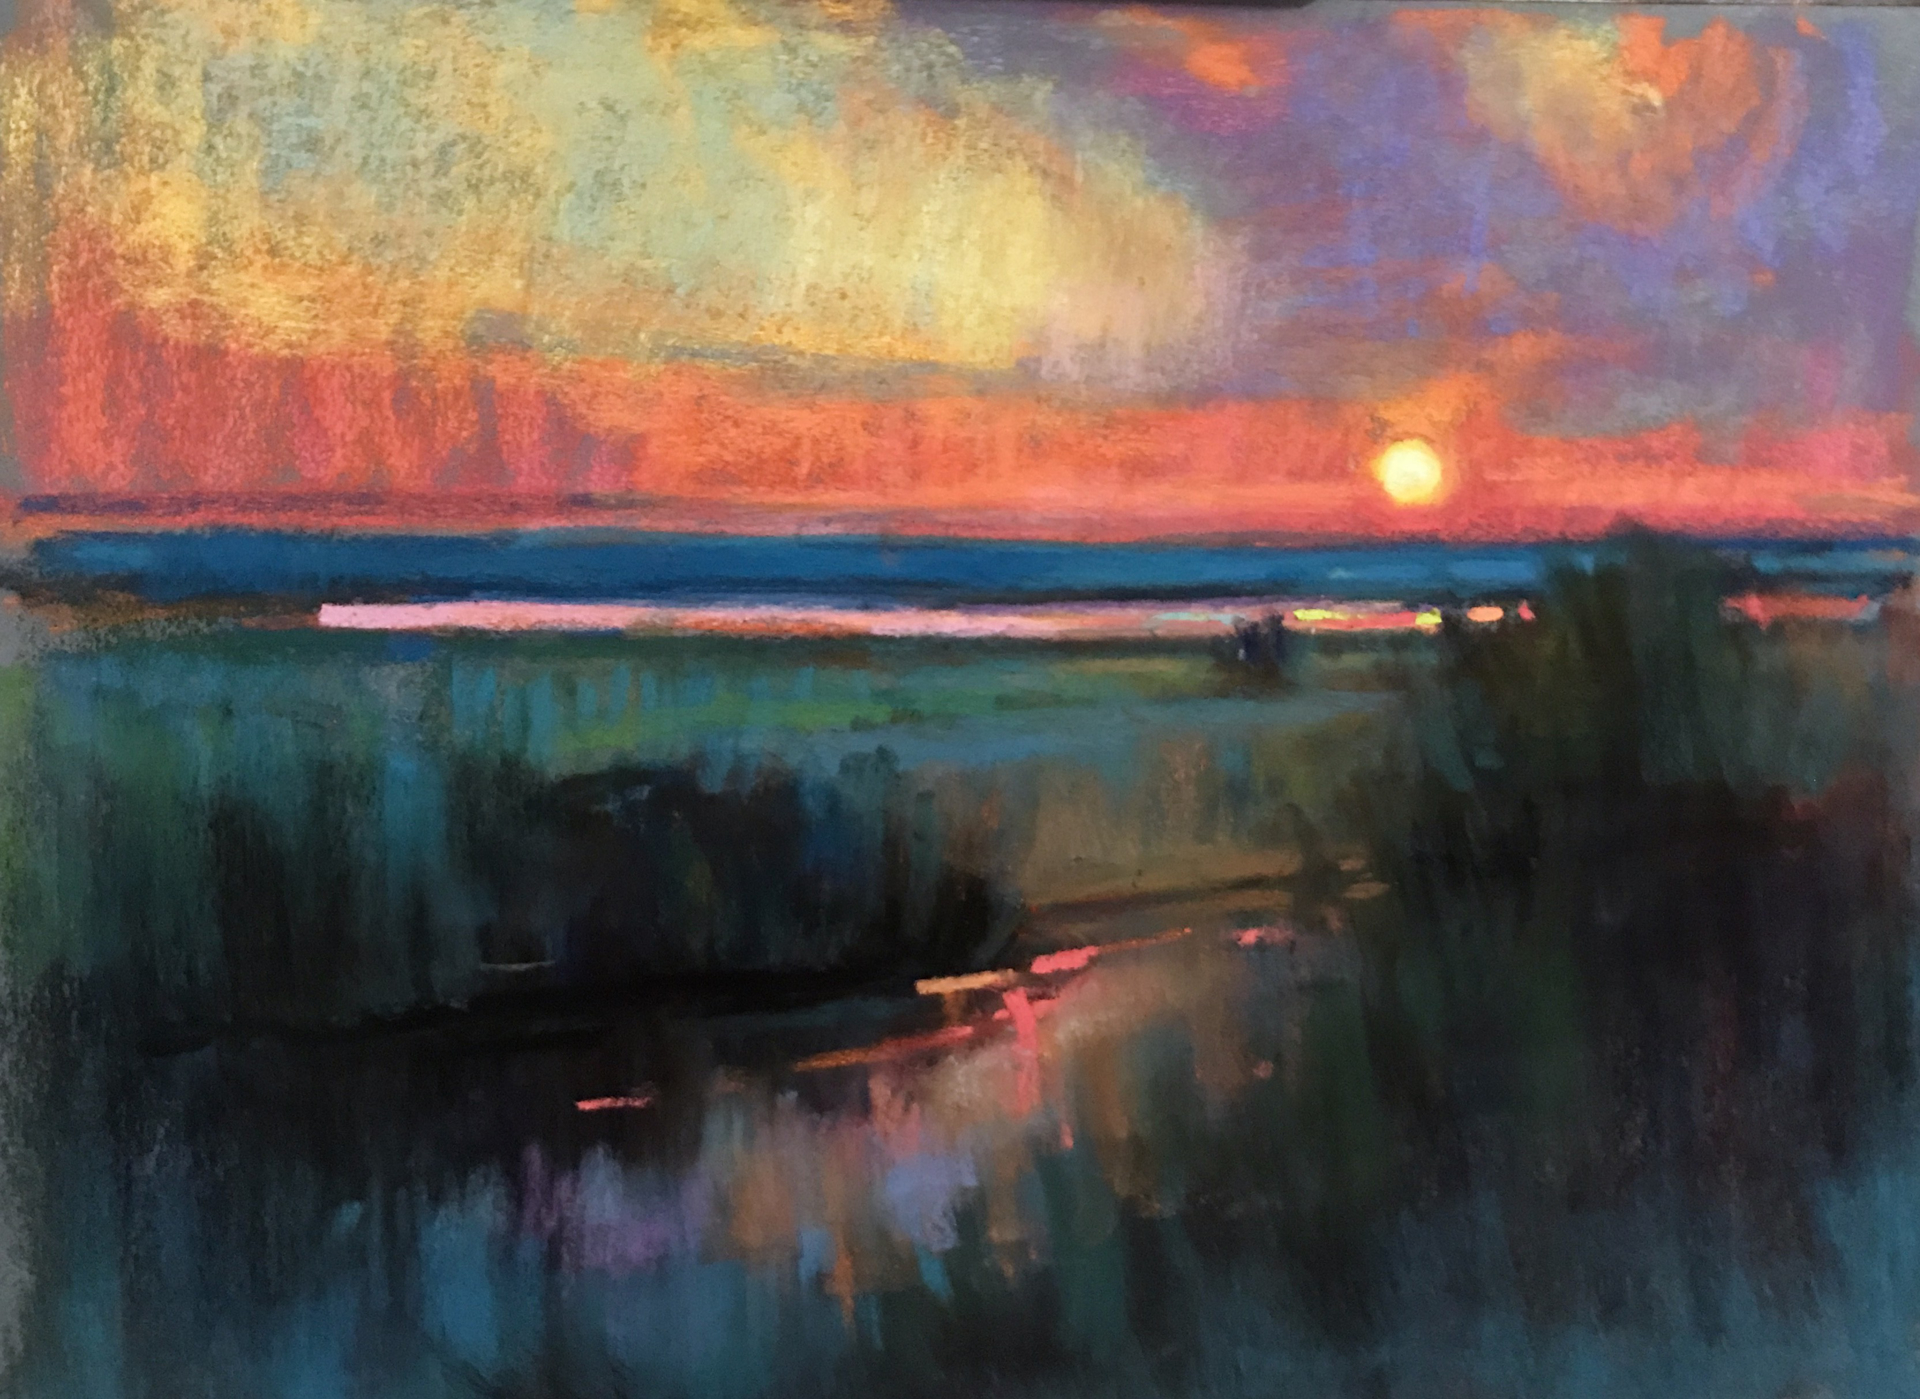 Spring Marsh, Dusk by Susan Mayfield